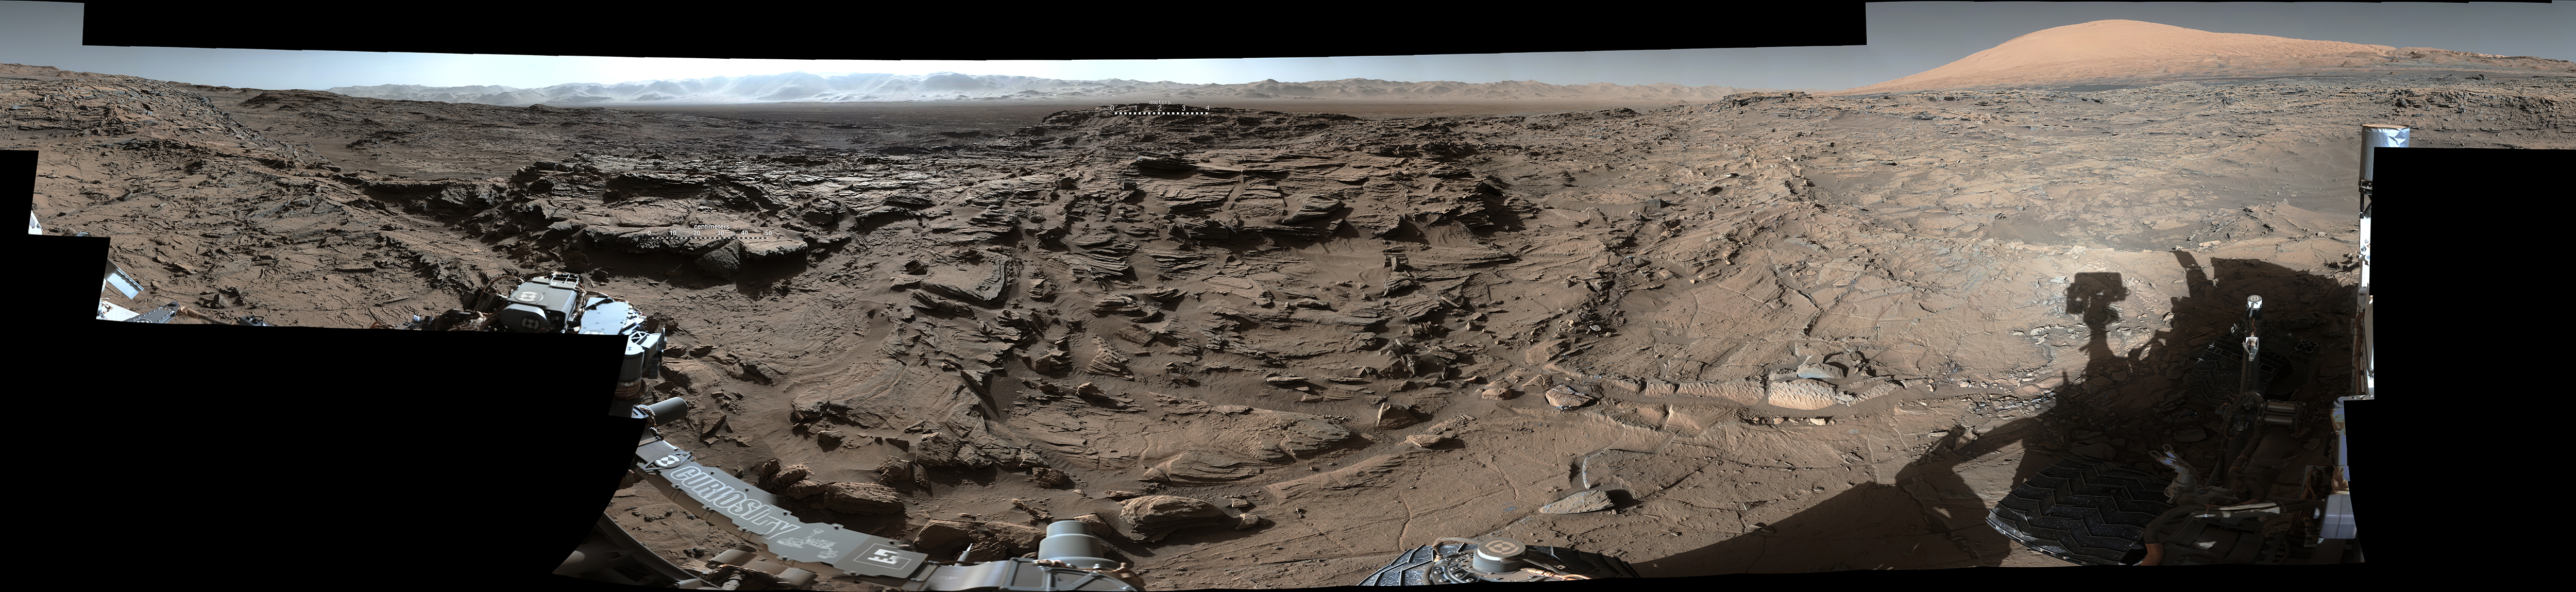 mars rover lost - photo #23